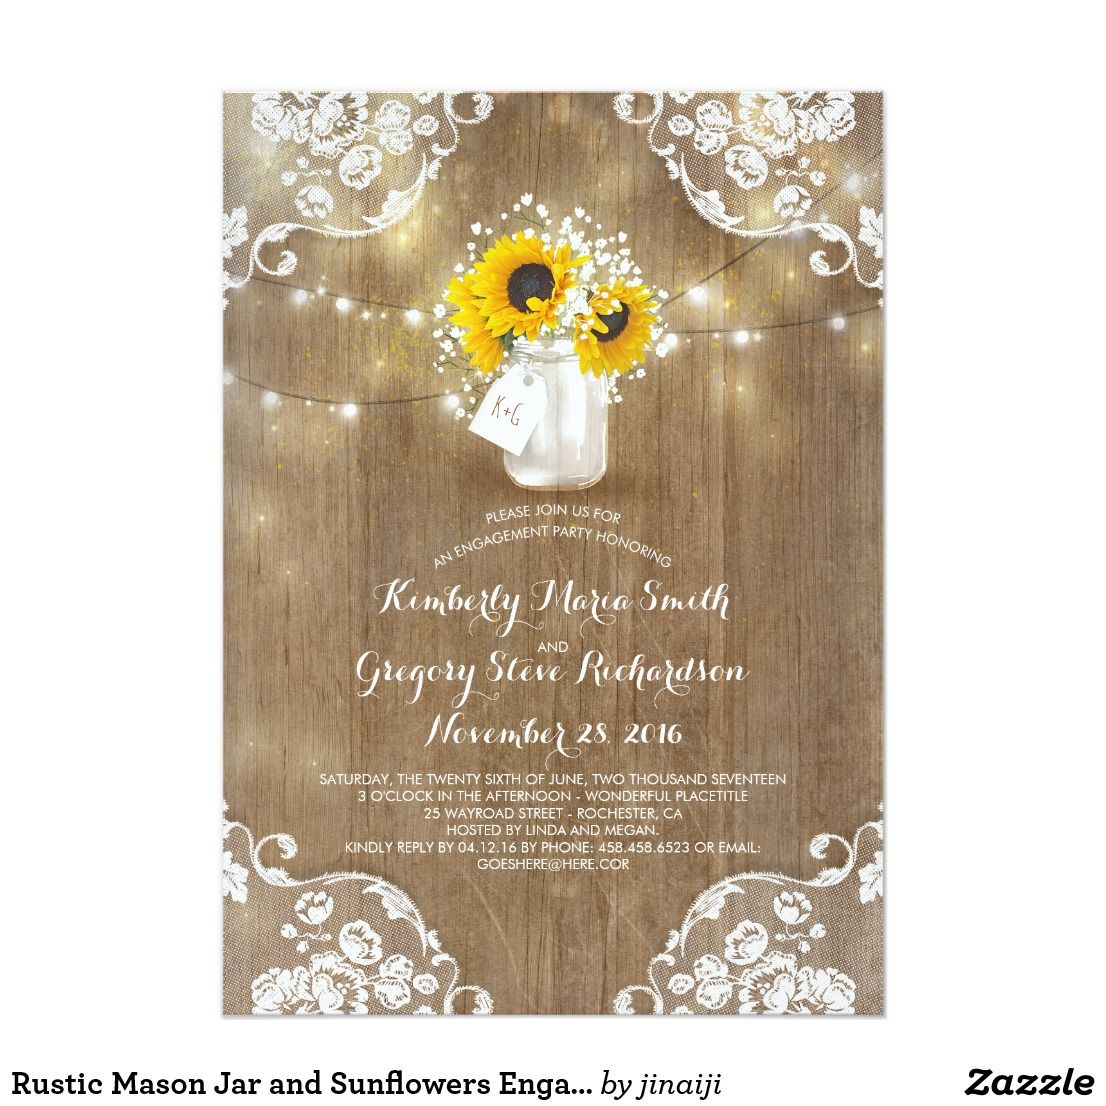 Rustic Mason Jar and Sunflowers Engagement Party | engagement party ...